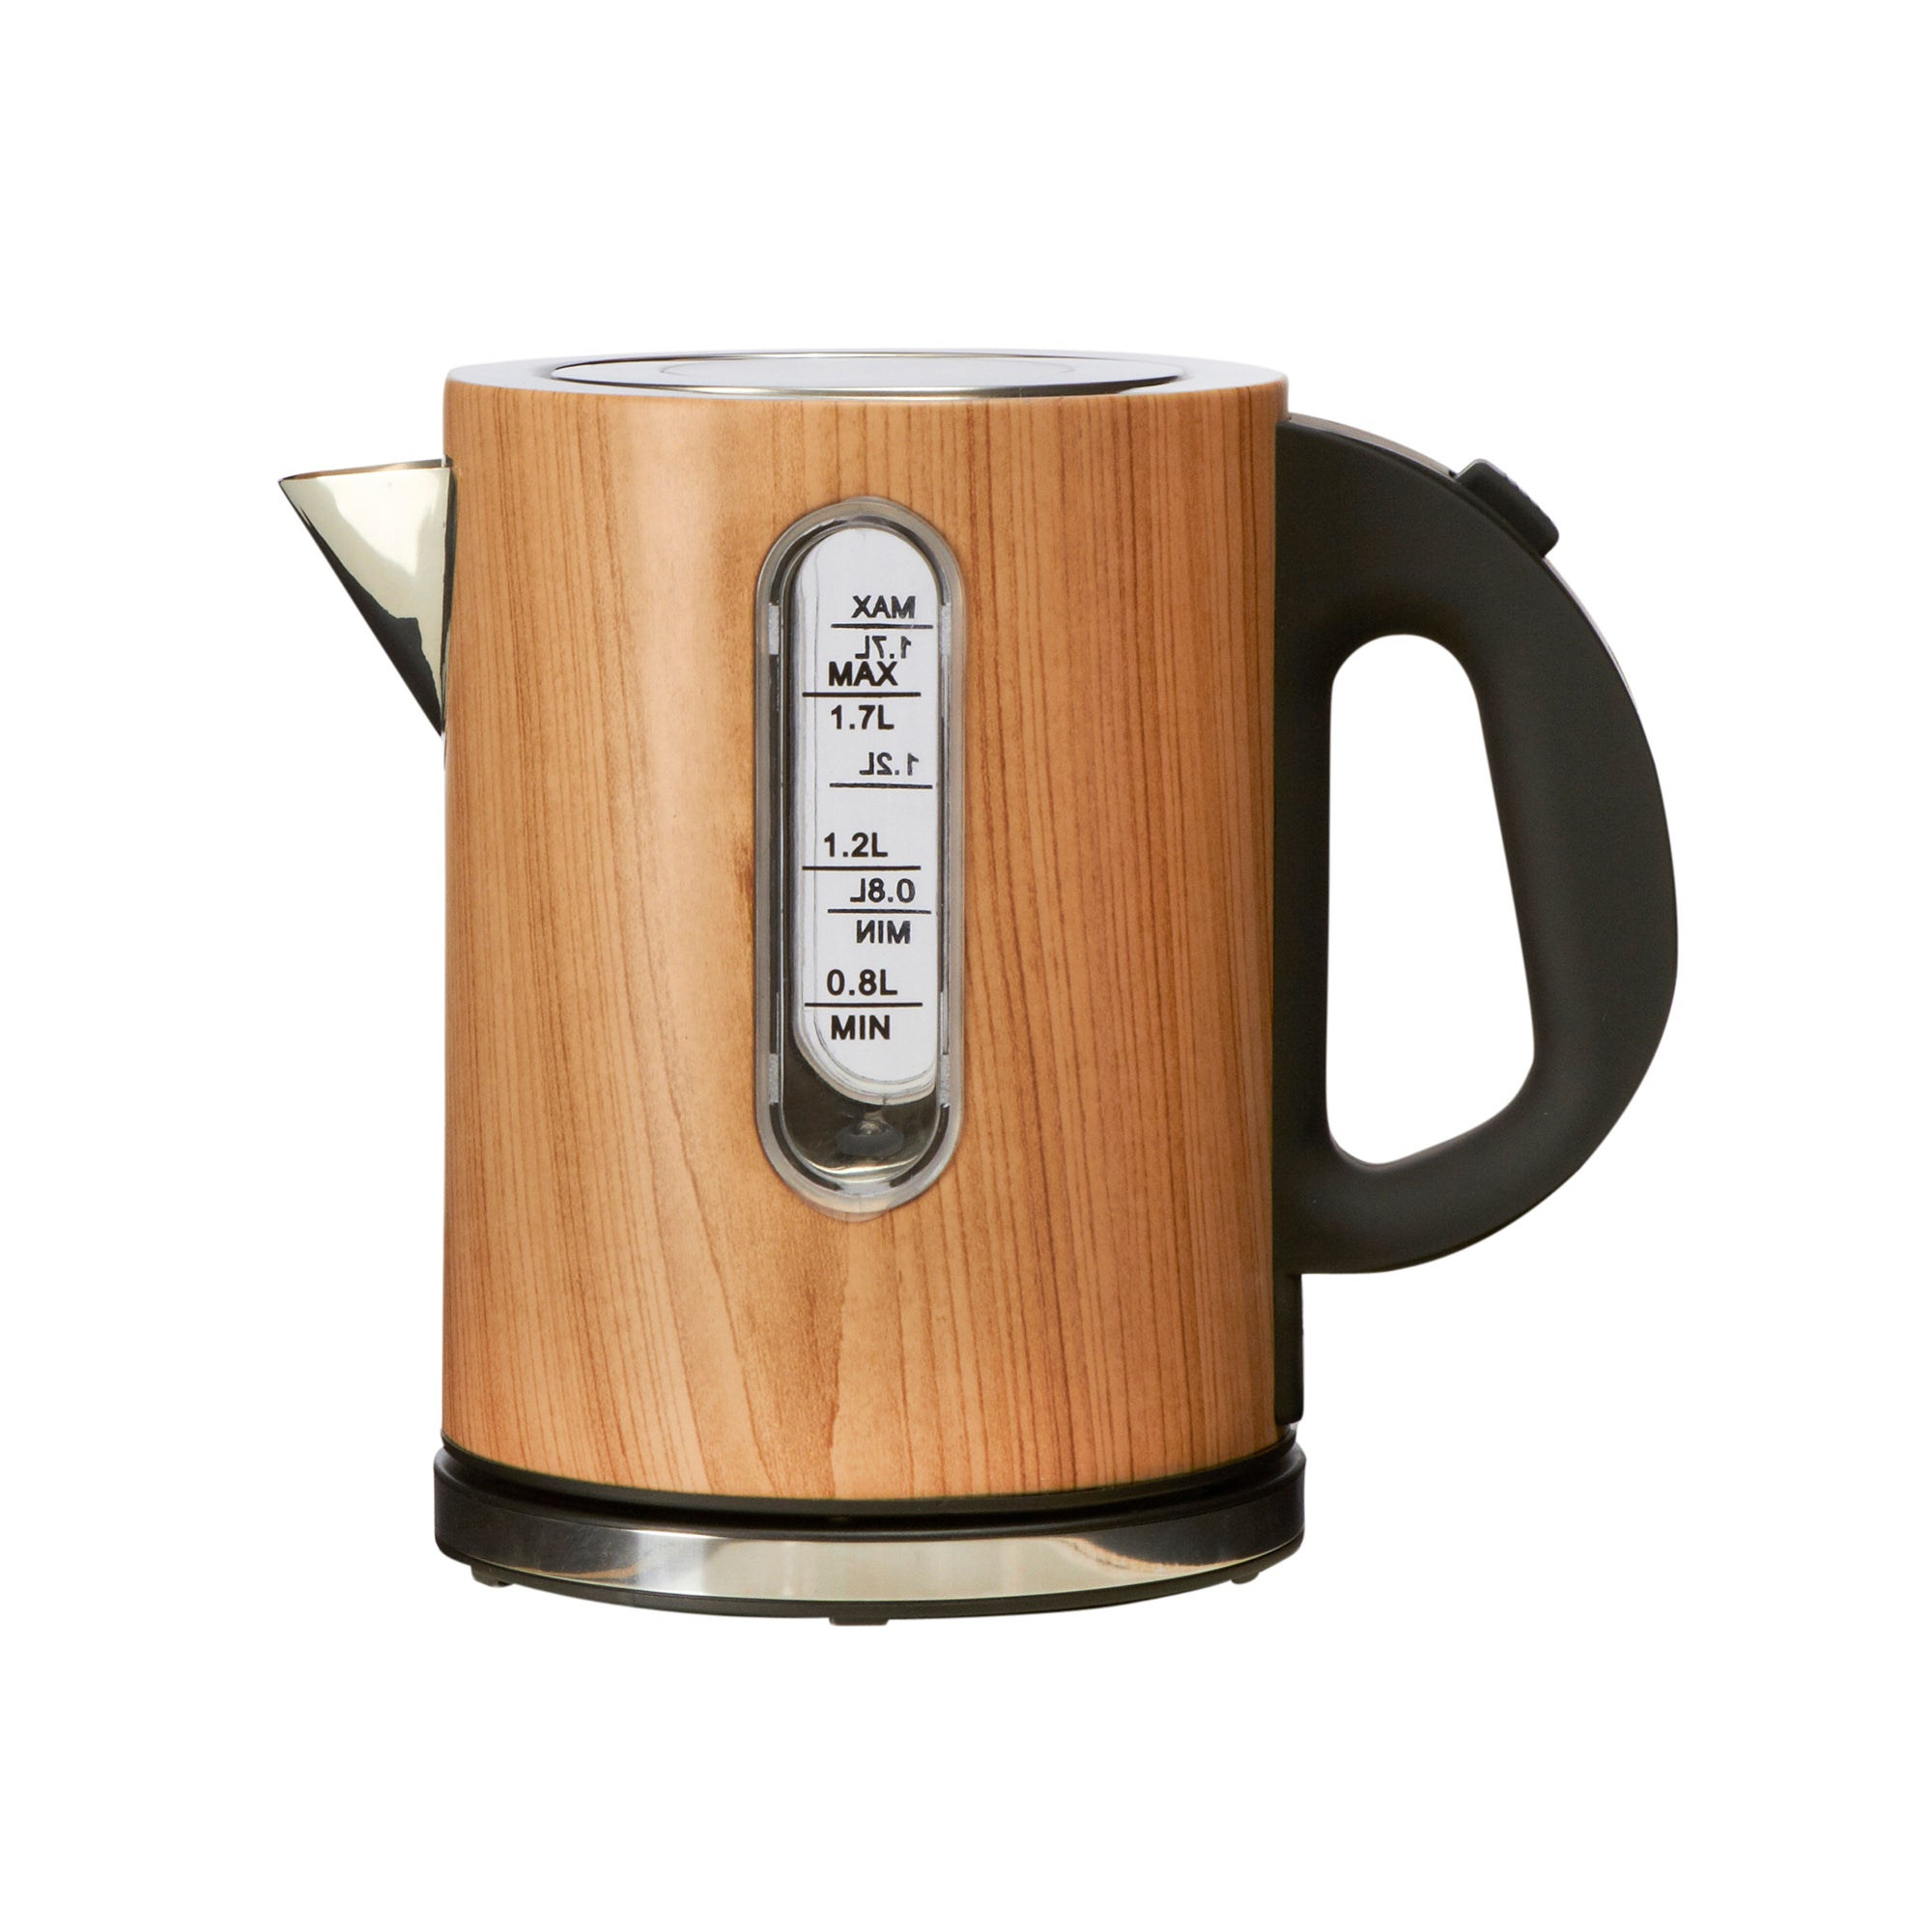 Wooden Printed Kettle